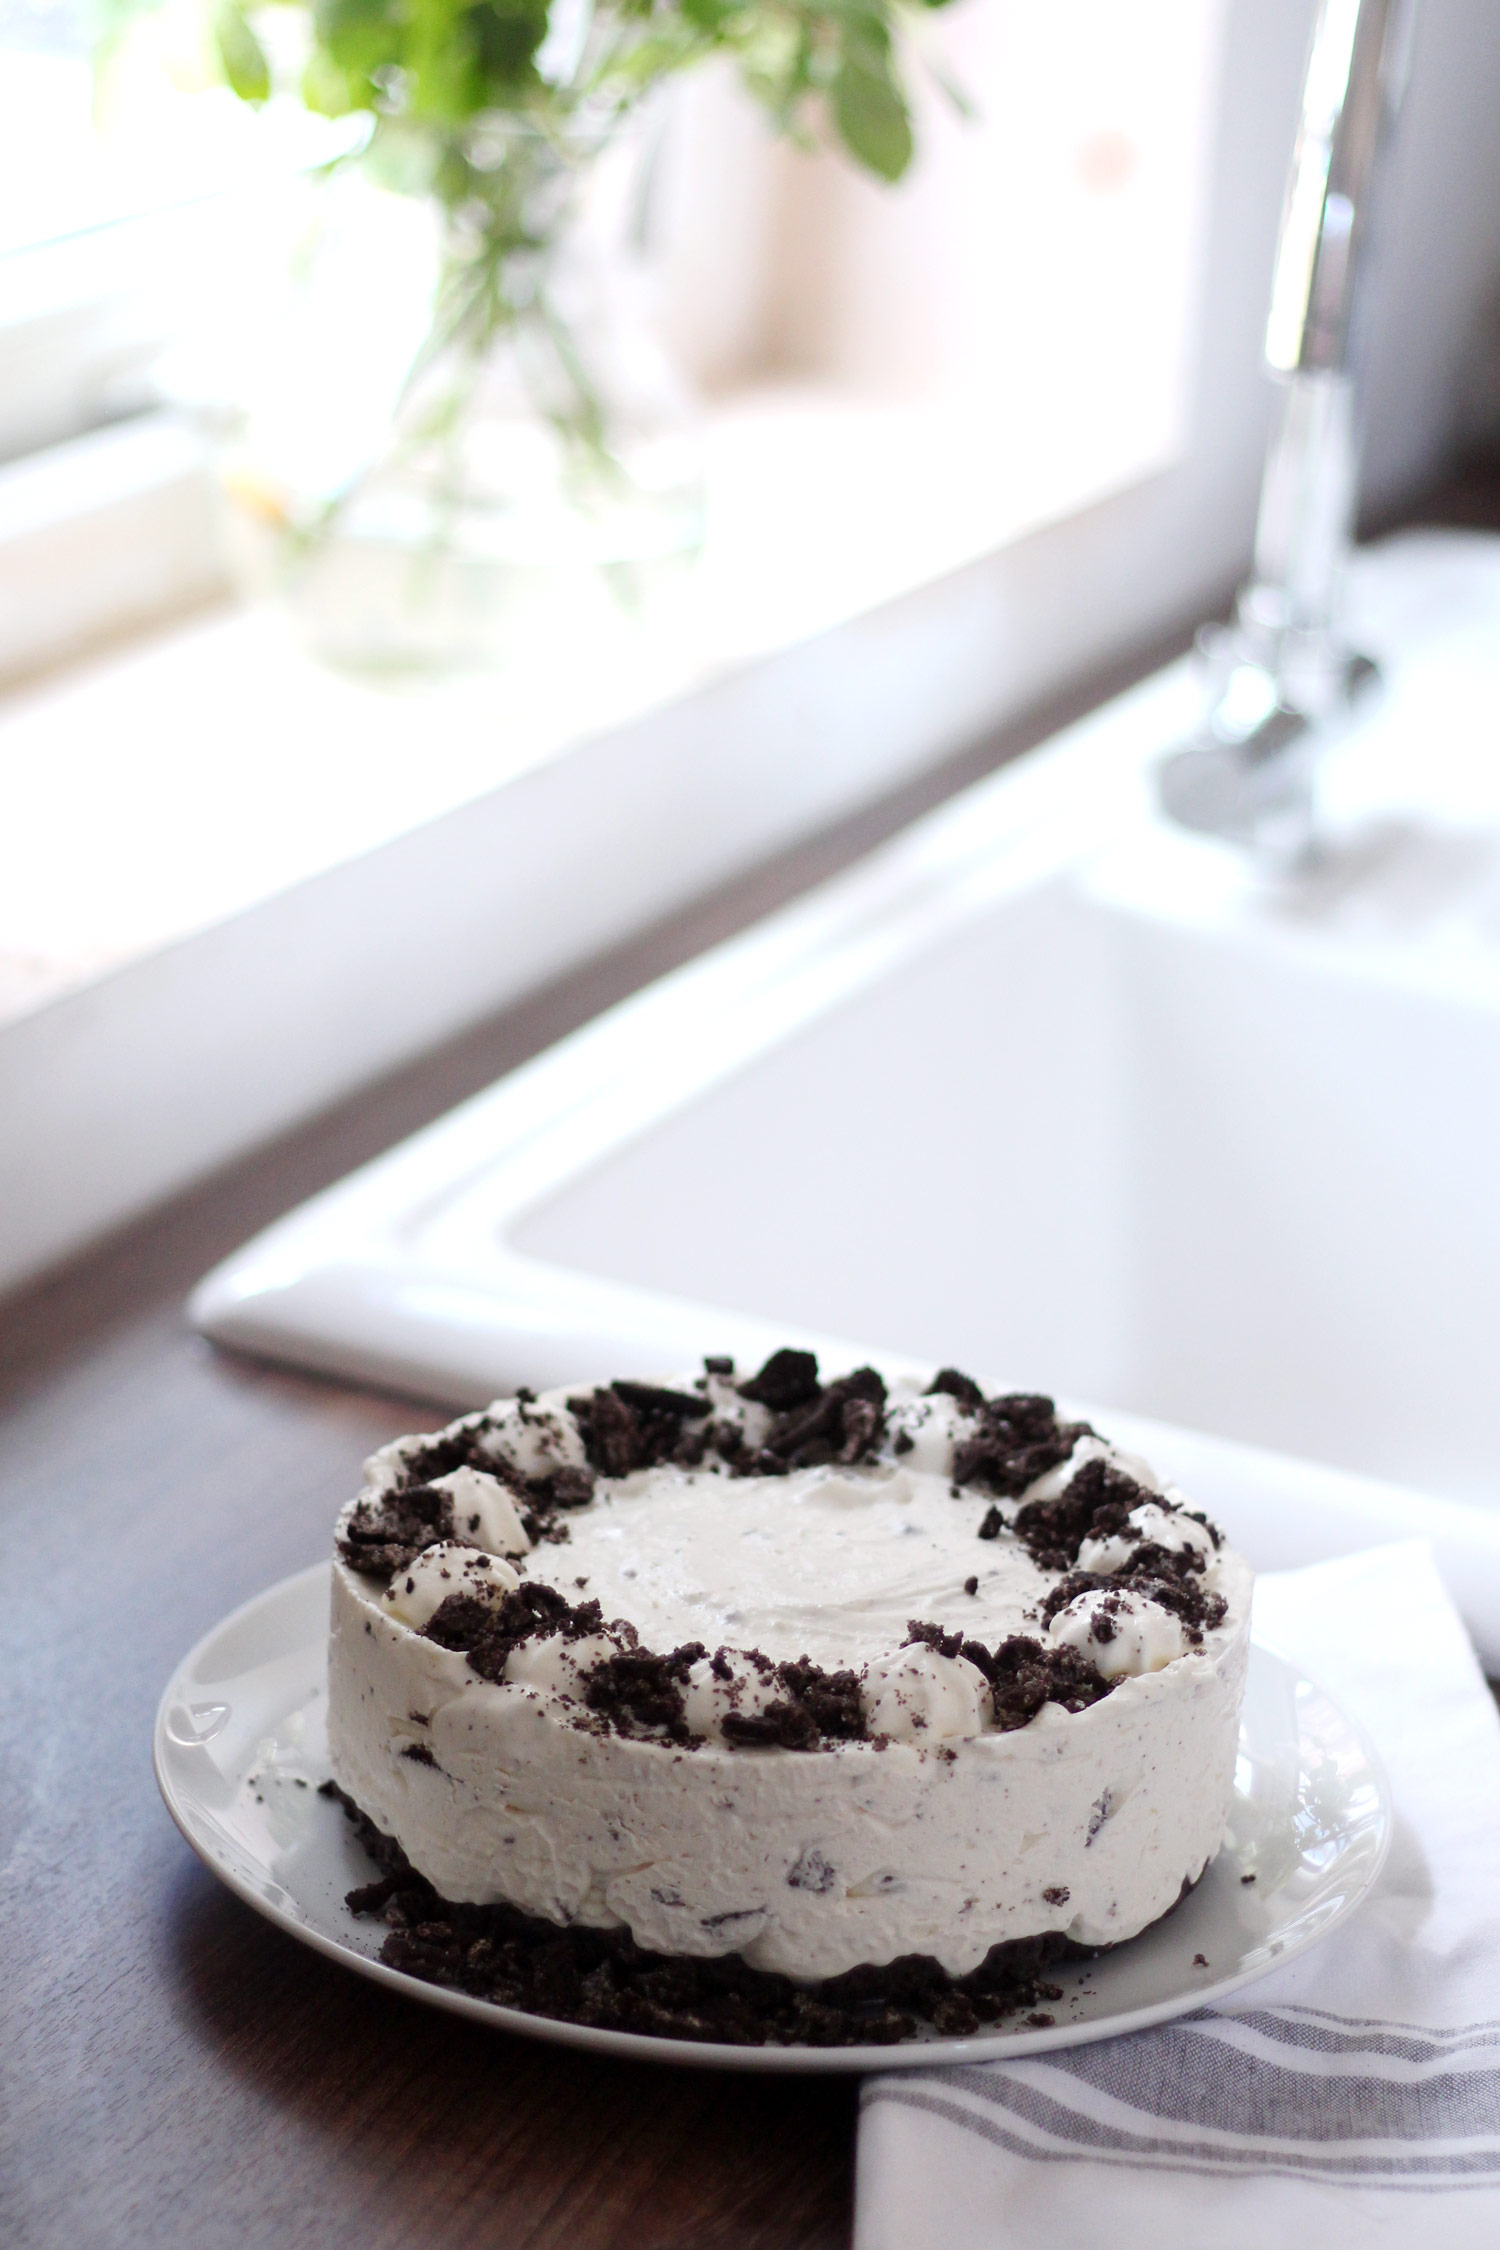 oreo-cheesecake-recipe-no-bake-easy-guide-3